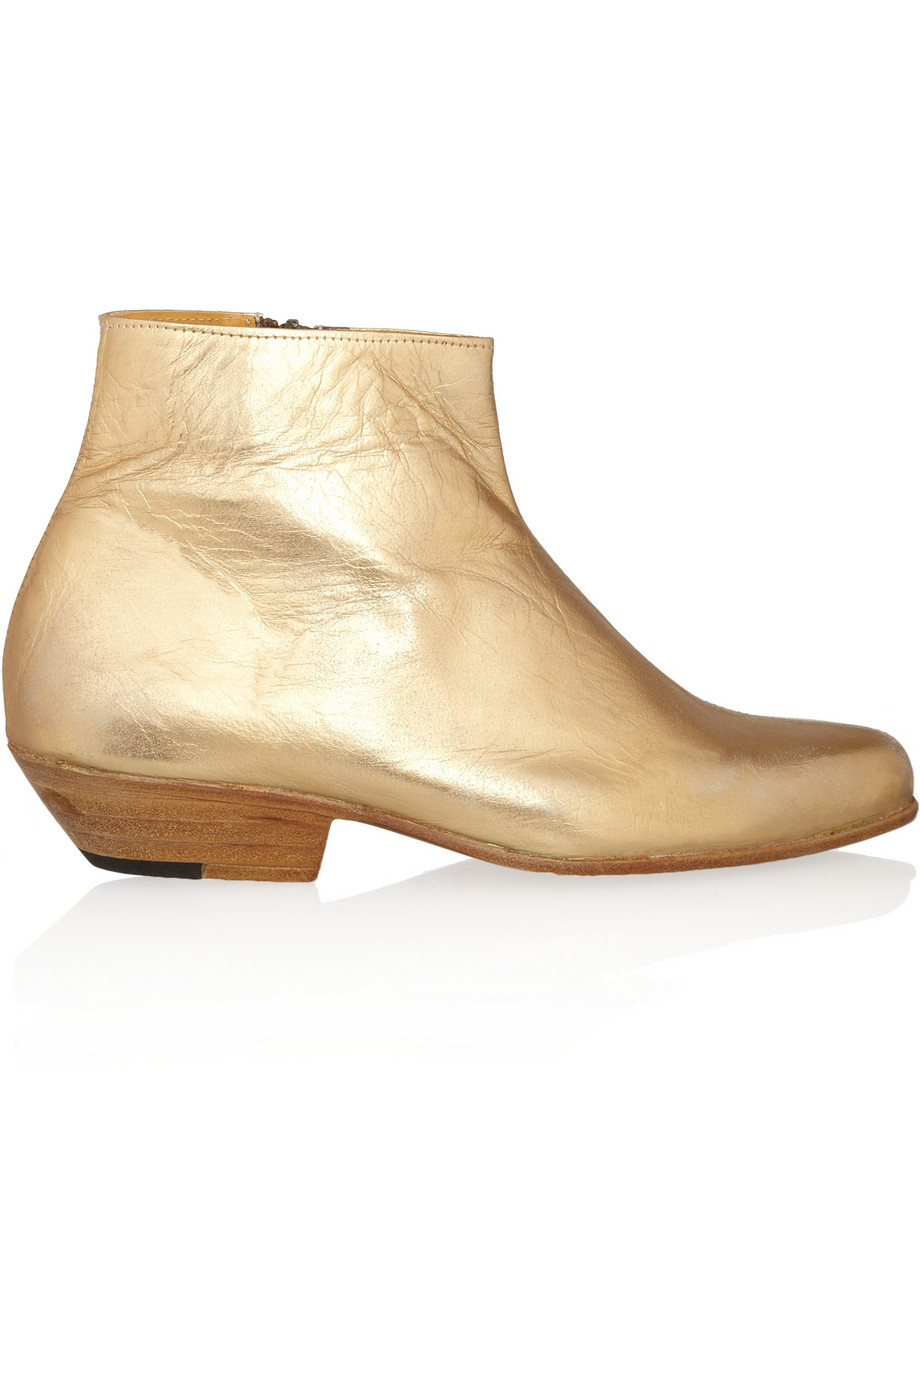 Metallic Leather Boots : Esquivel jett metallic leather ankle boots in gold lyst